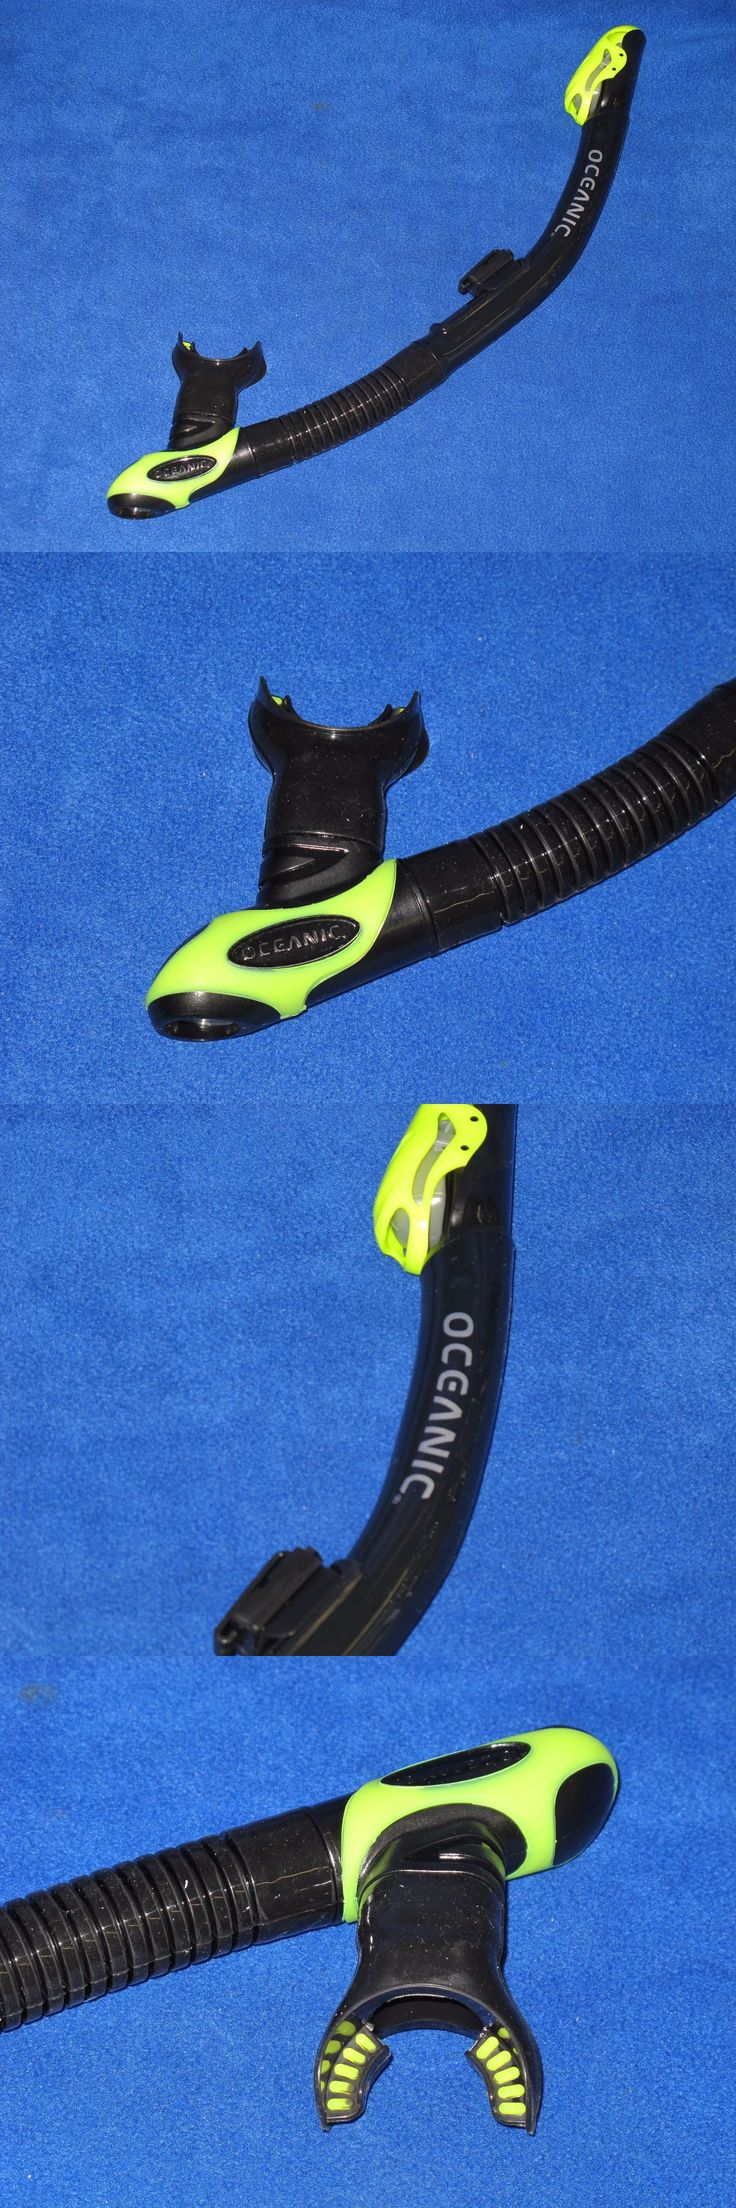 Snorkels and Sets 71162: Oceanic Ultra Dry Snorkel Scuba Diving Dry Top Flex Tube Snorkel Black Yellow -> BUY IT NOW ONLY: $44.95 on eBay!